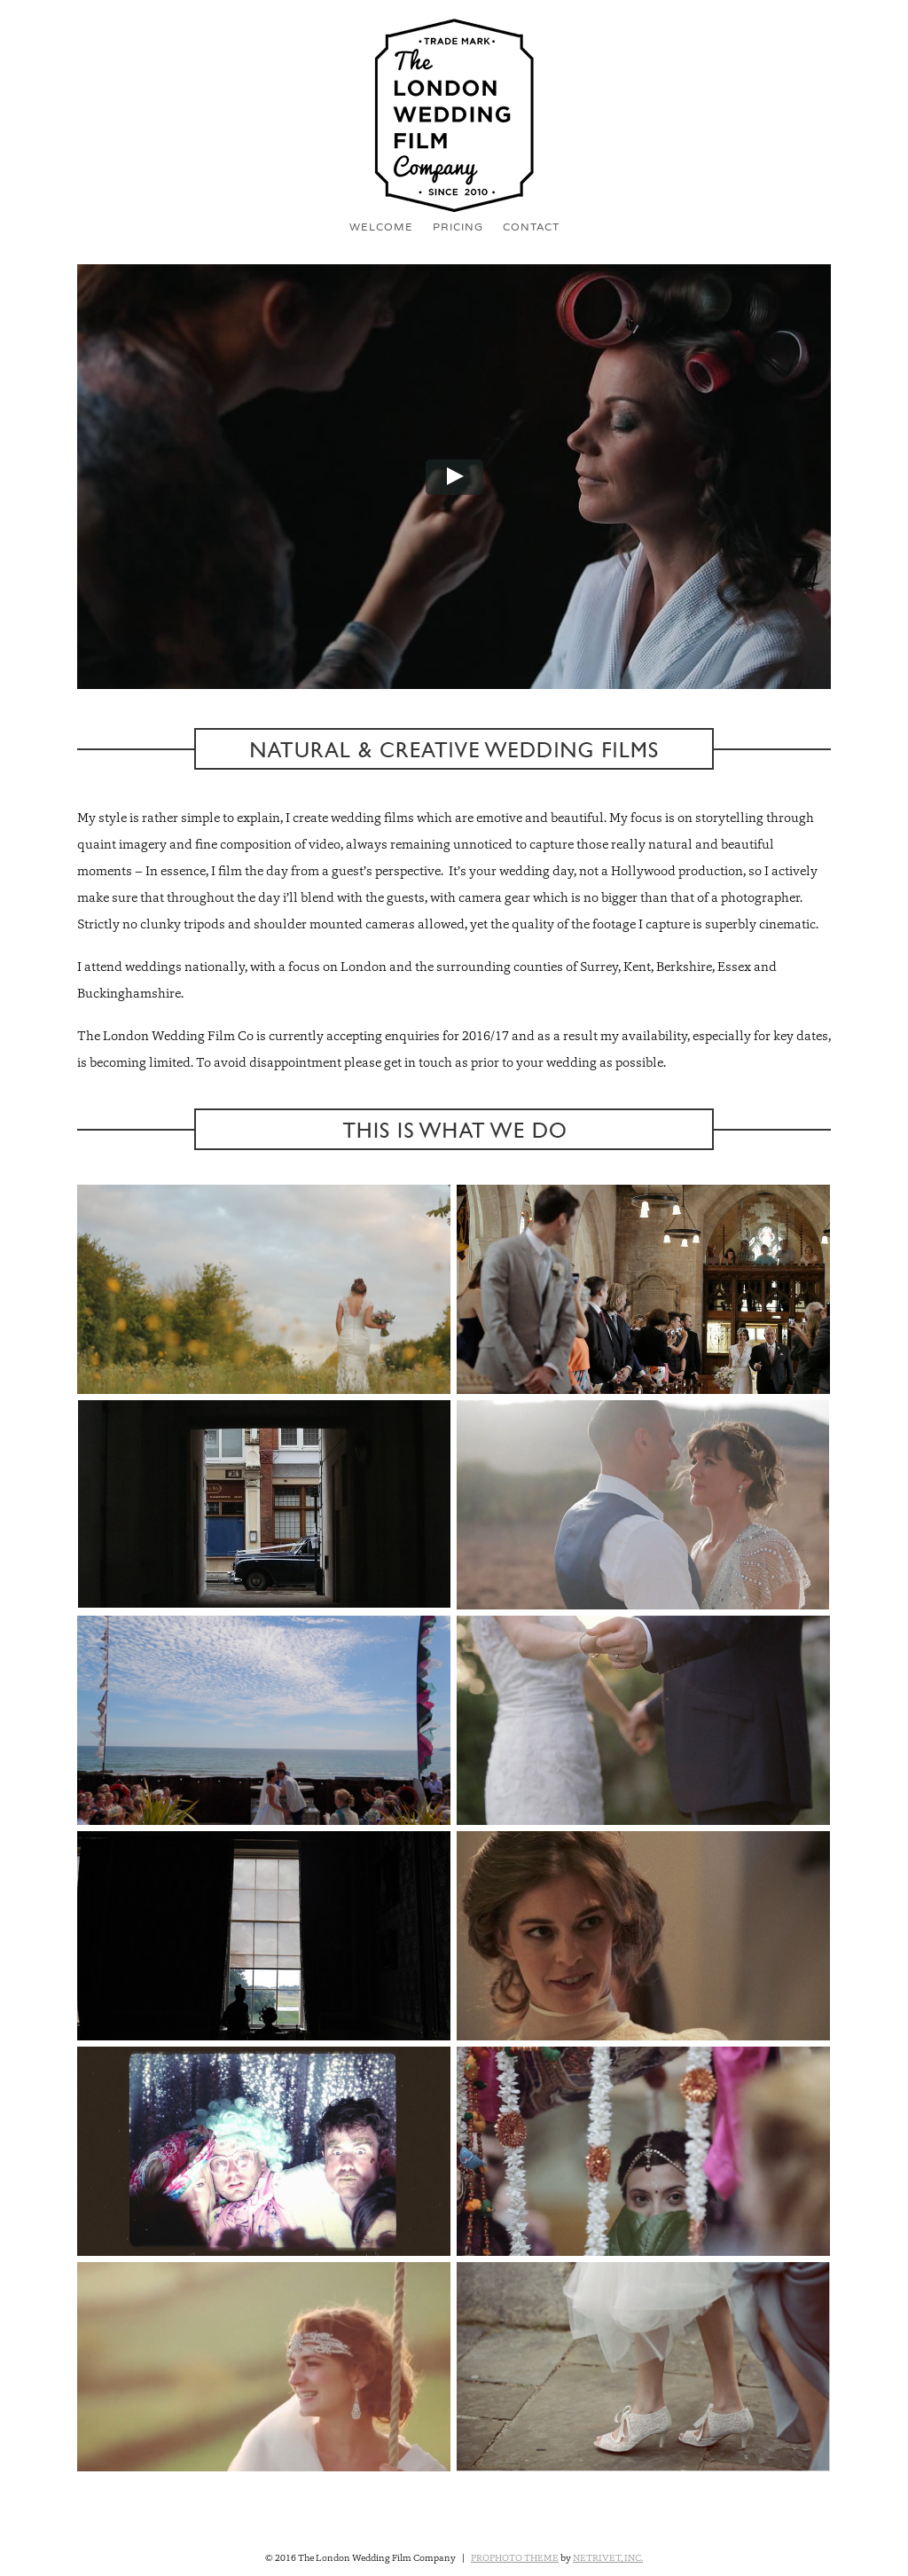 The London Wedding Film Company Compeors Revenue And Employees Owler Profile